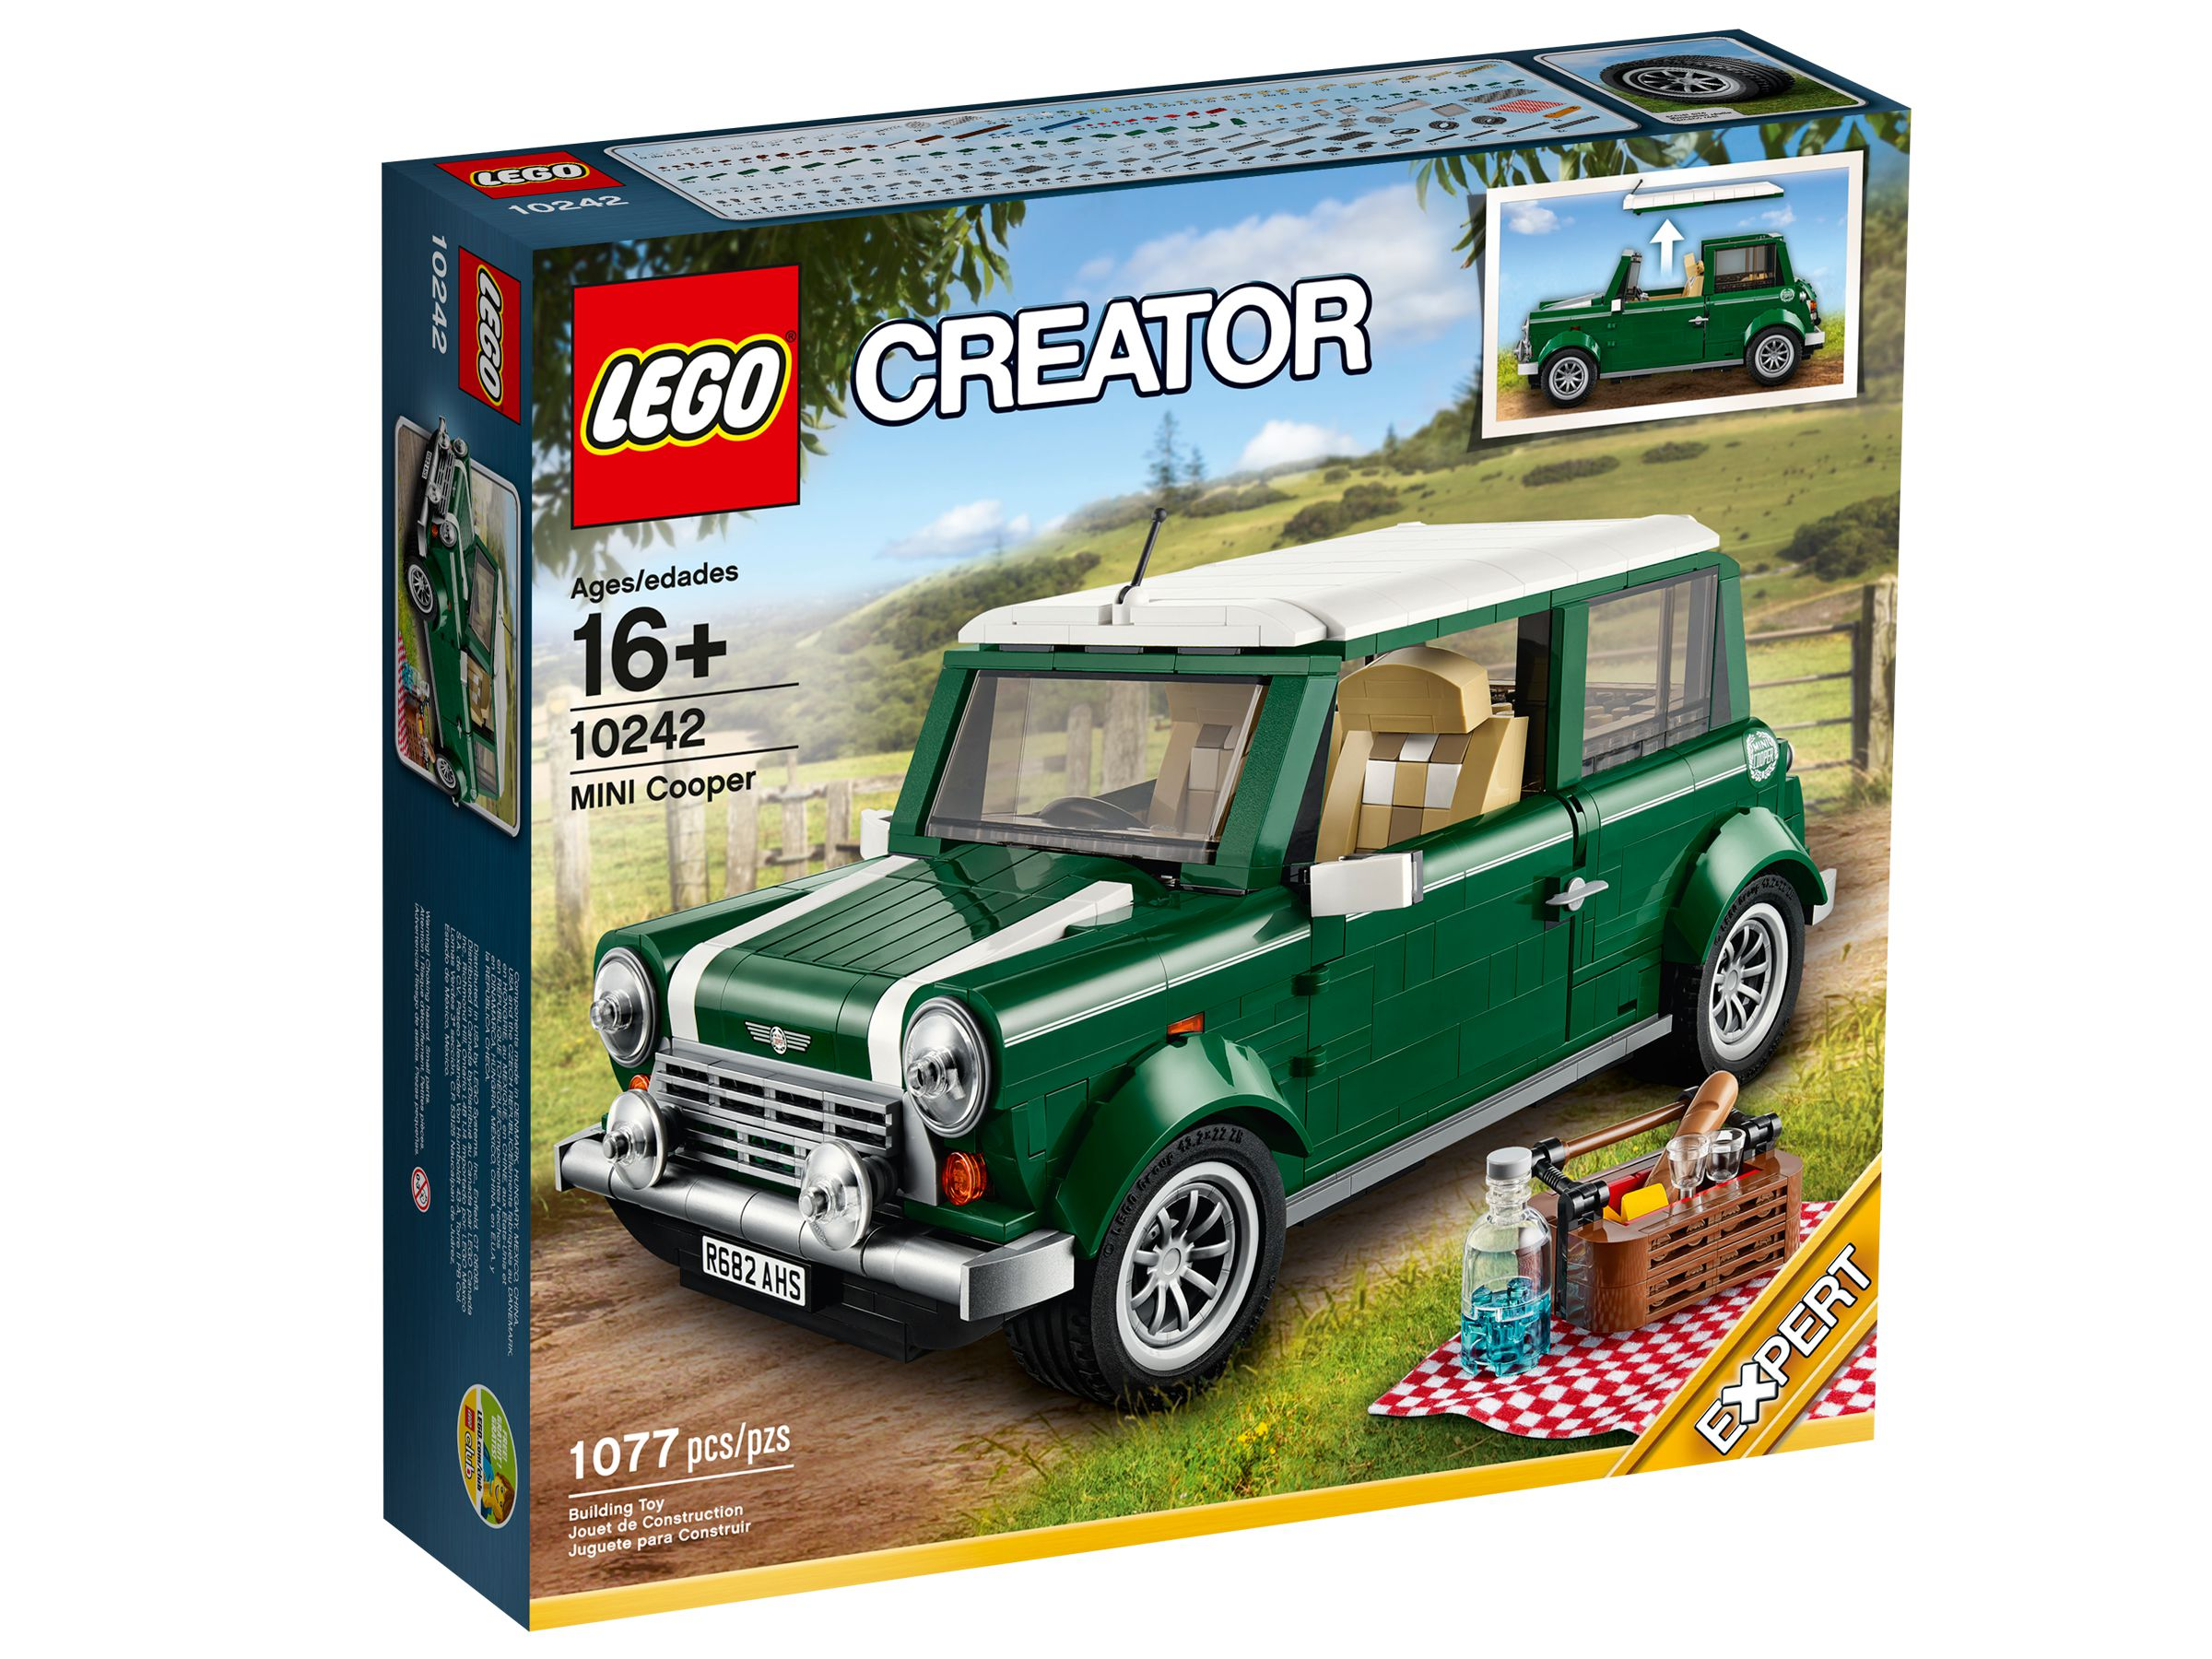 LEGO Advanced Models 10242 MINI Cooper LEGO_10242_alt1.jpg